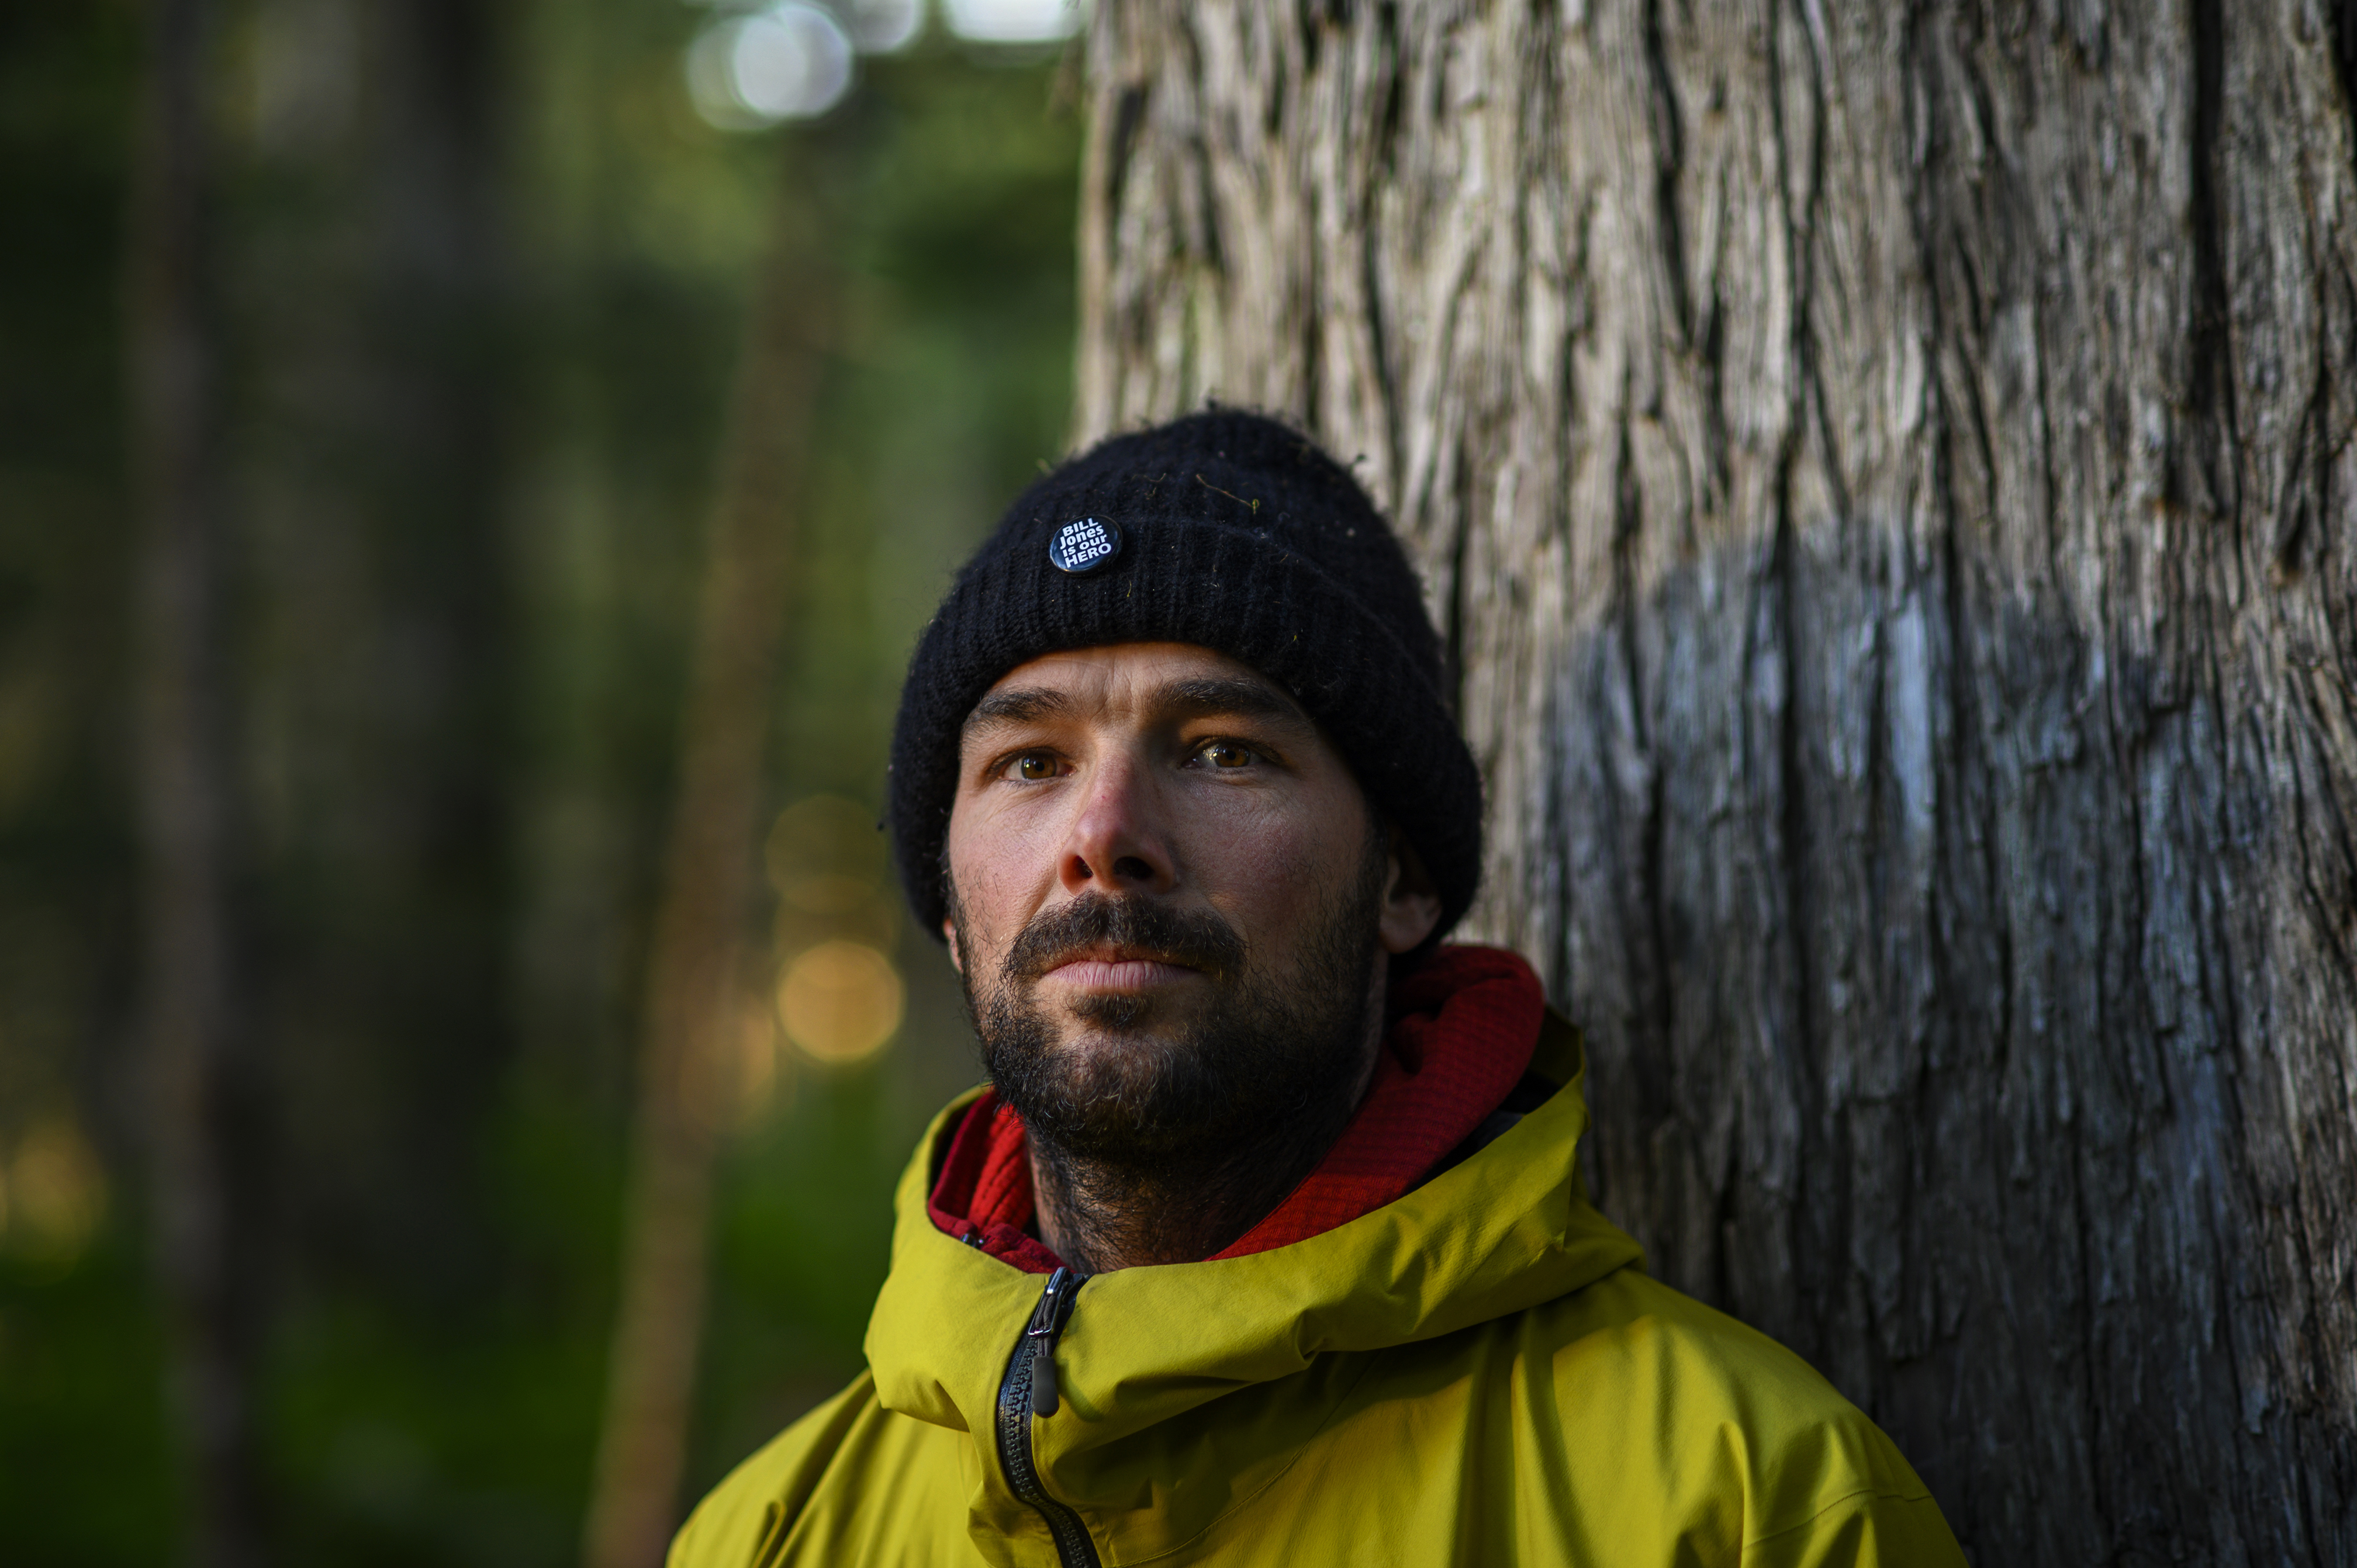 Jean-François Savard moved to the West Coast to become a commercial fisherman but changed careers after the industry declined and became a carpenter. He's been helping man the blockades for more than two months. (Kieran Oudshoorn/CBC)